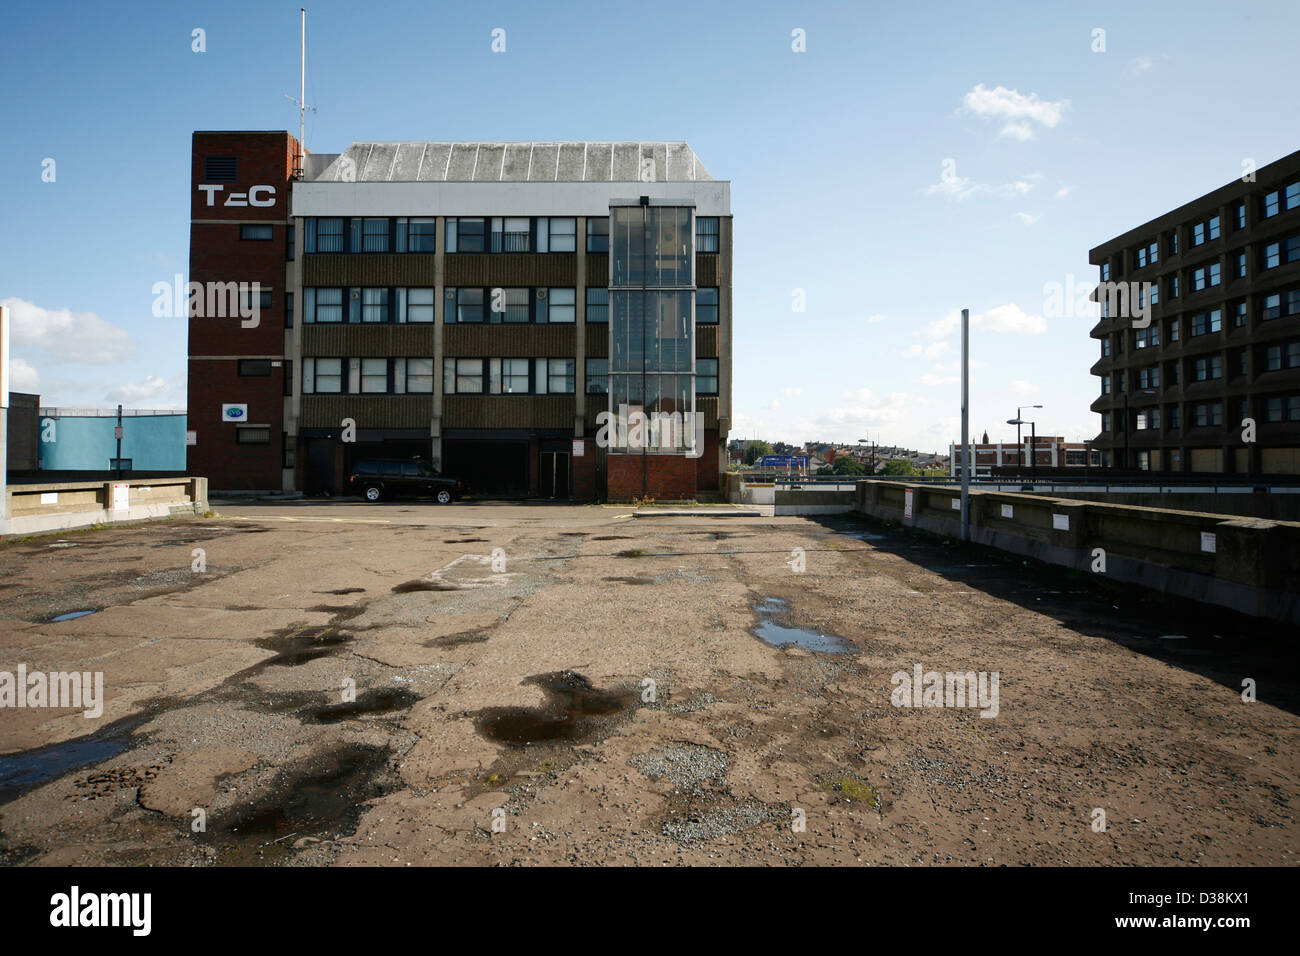 Multi storey car park in Rotherham due for redevelopment - Stock Image